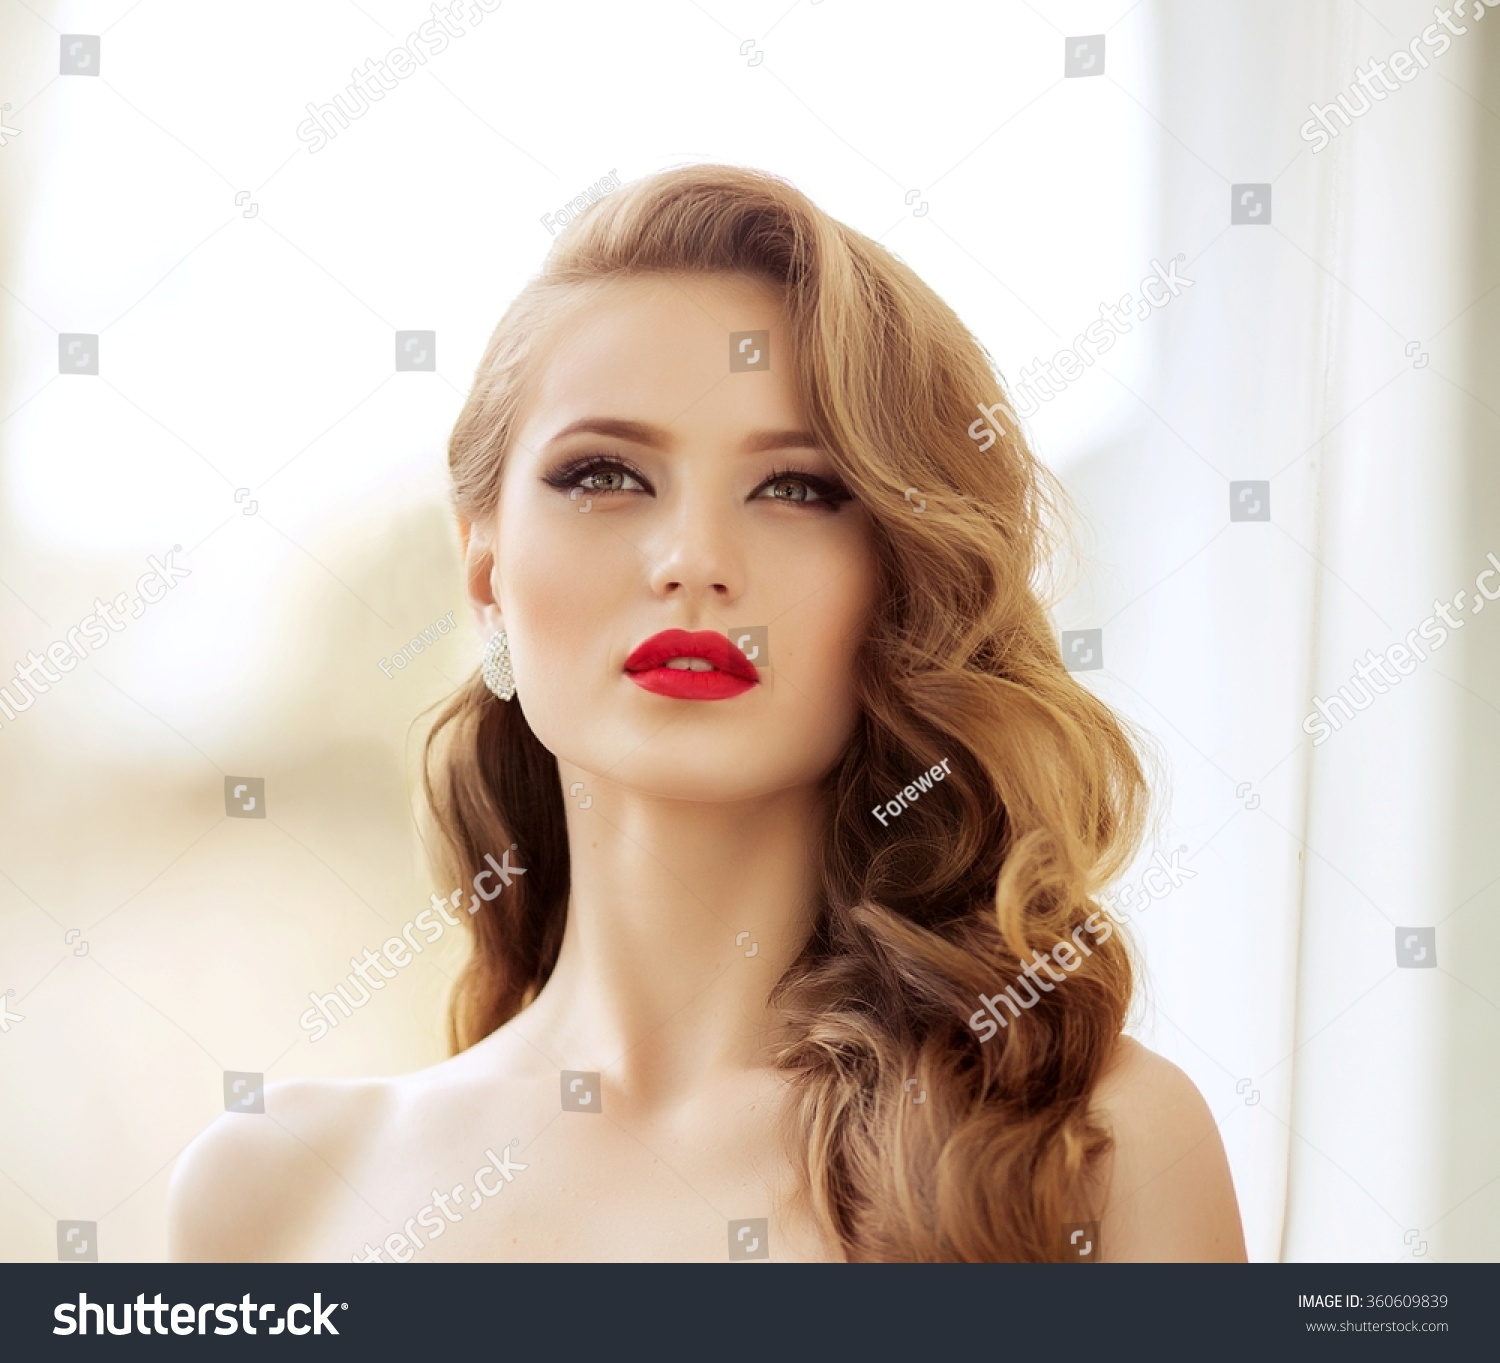 Fashion Beauty Model Girl Stock Image Image Of Manicured: Beautiful Fashion Model Woman With Hair, Red Lipstick